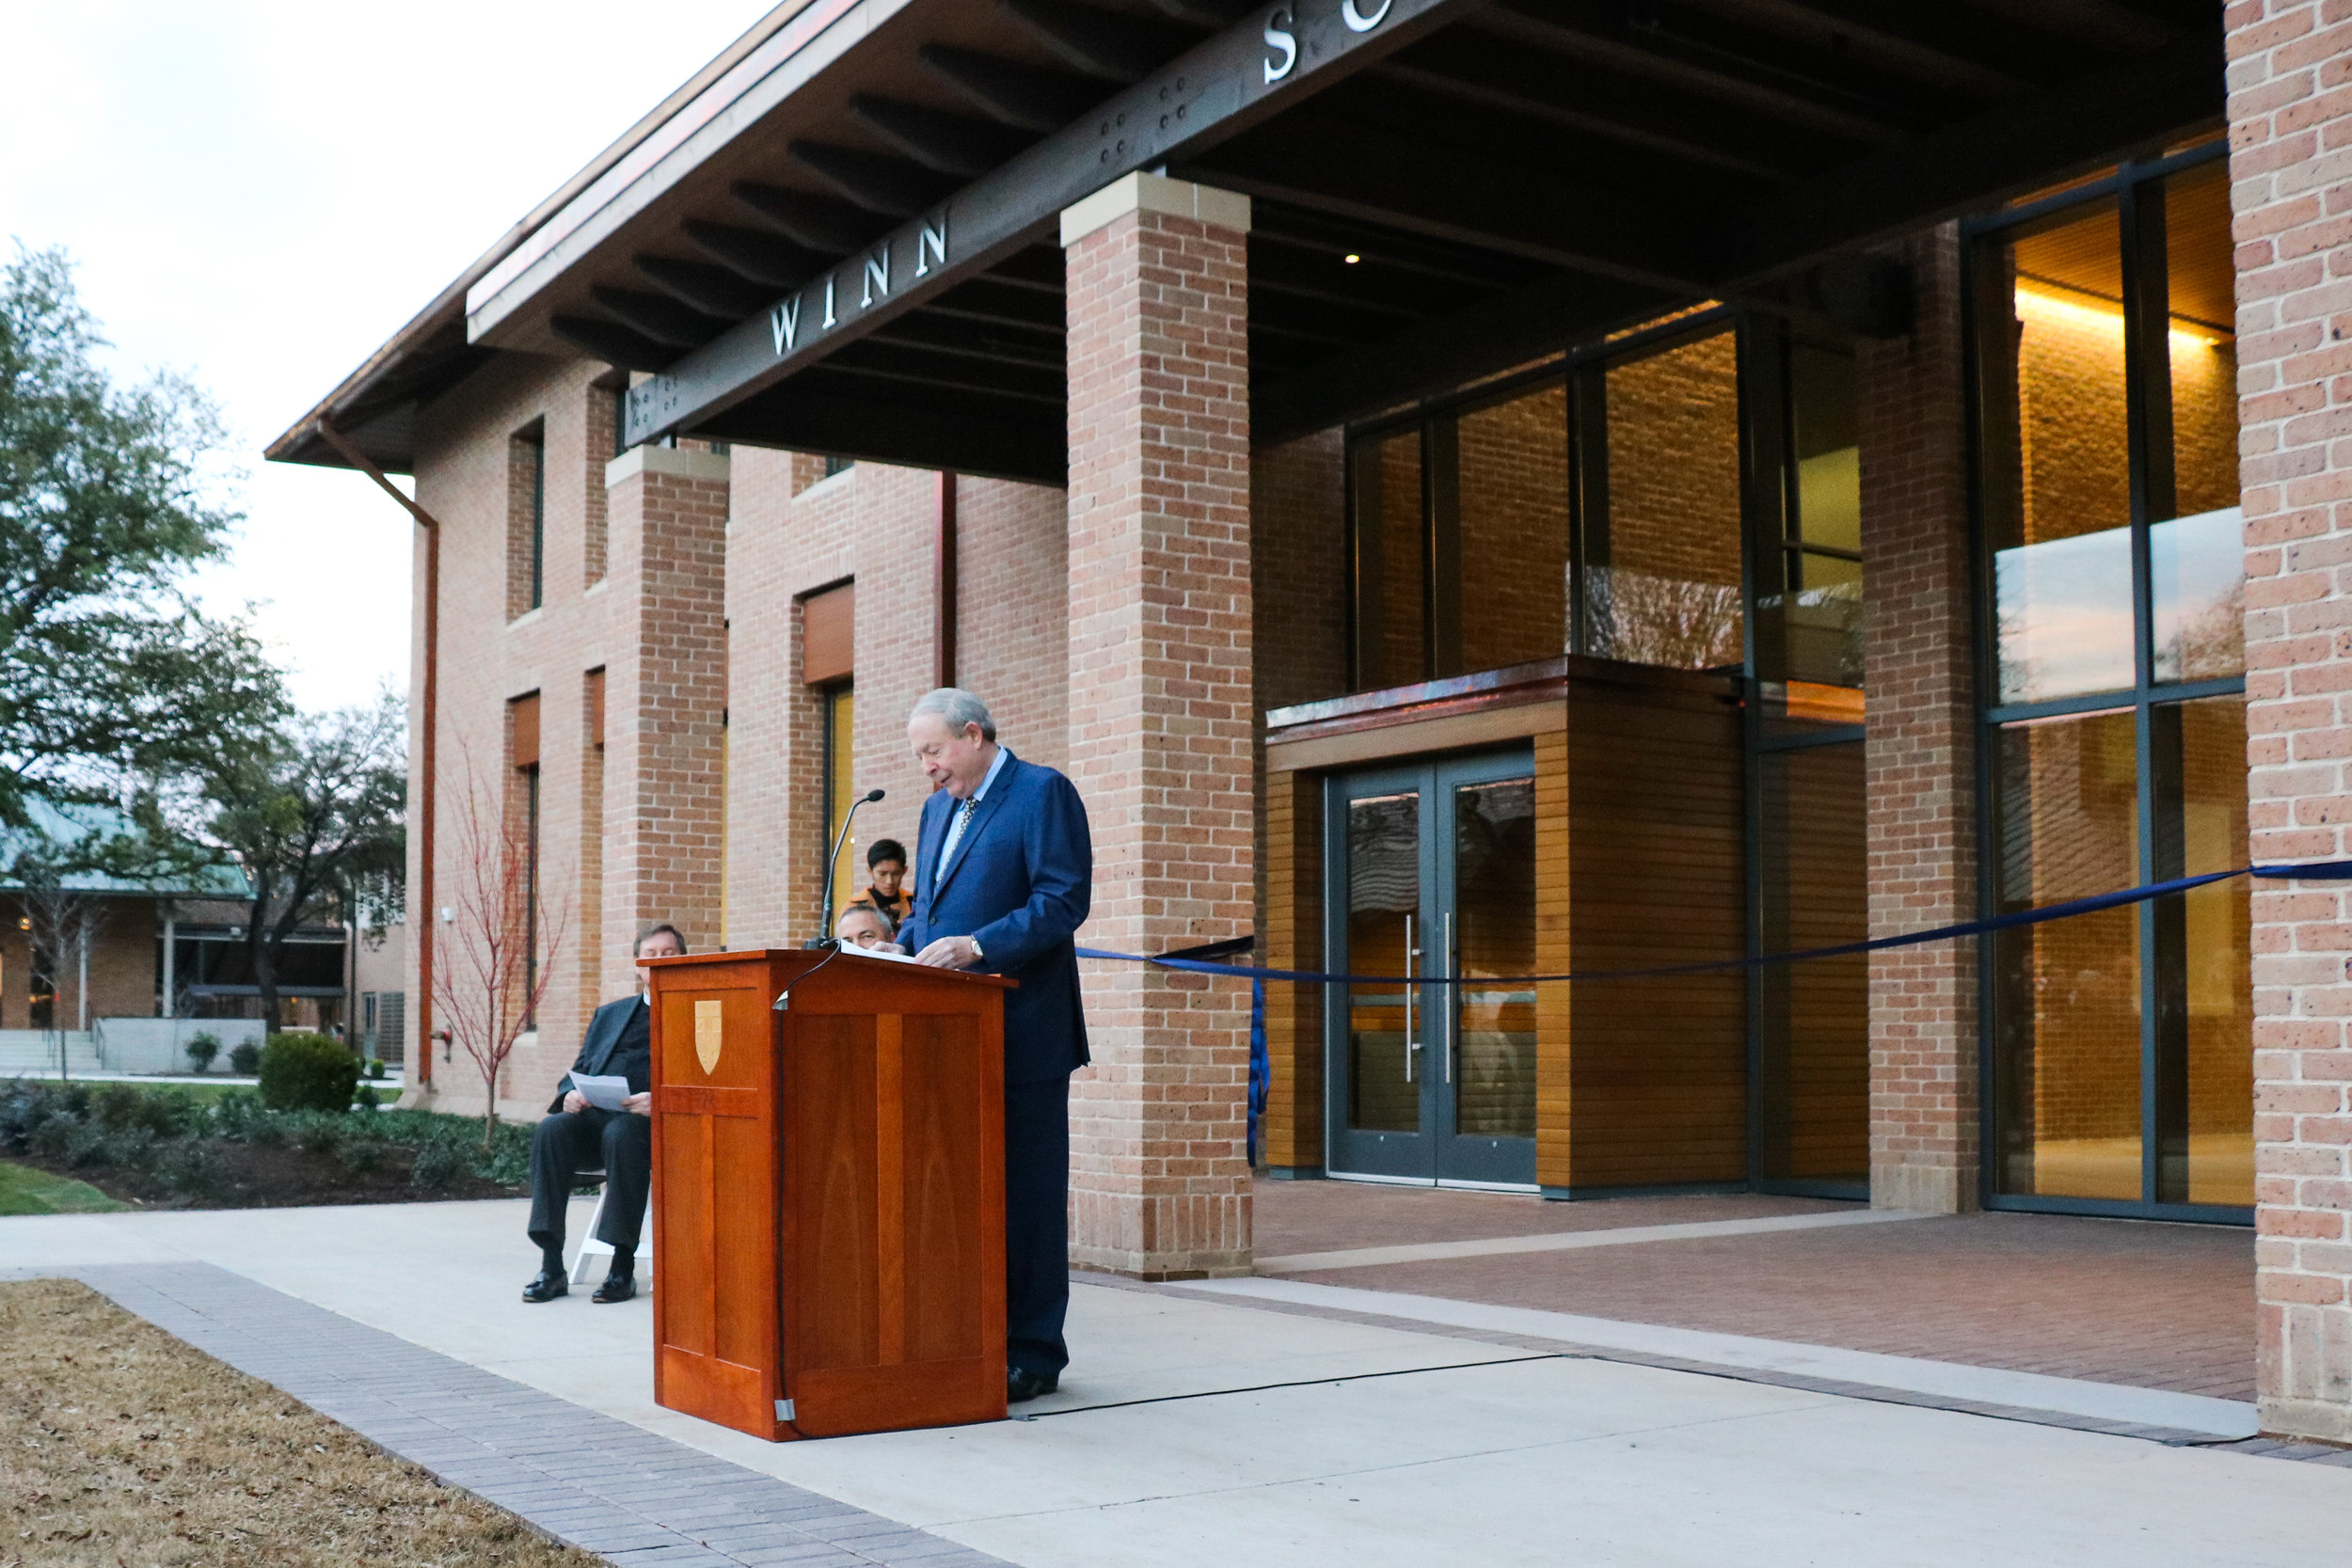 Chuckling as he tells a story of a quirky science teacher, Steve Winn '64 speaks at the opening ceremony of the Winn Science Center Jan. 9. The Winn Family Foundation was the principal donor behind the new building.